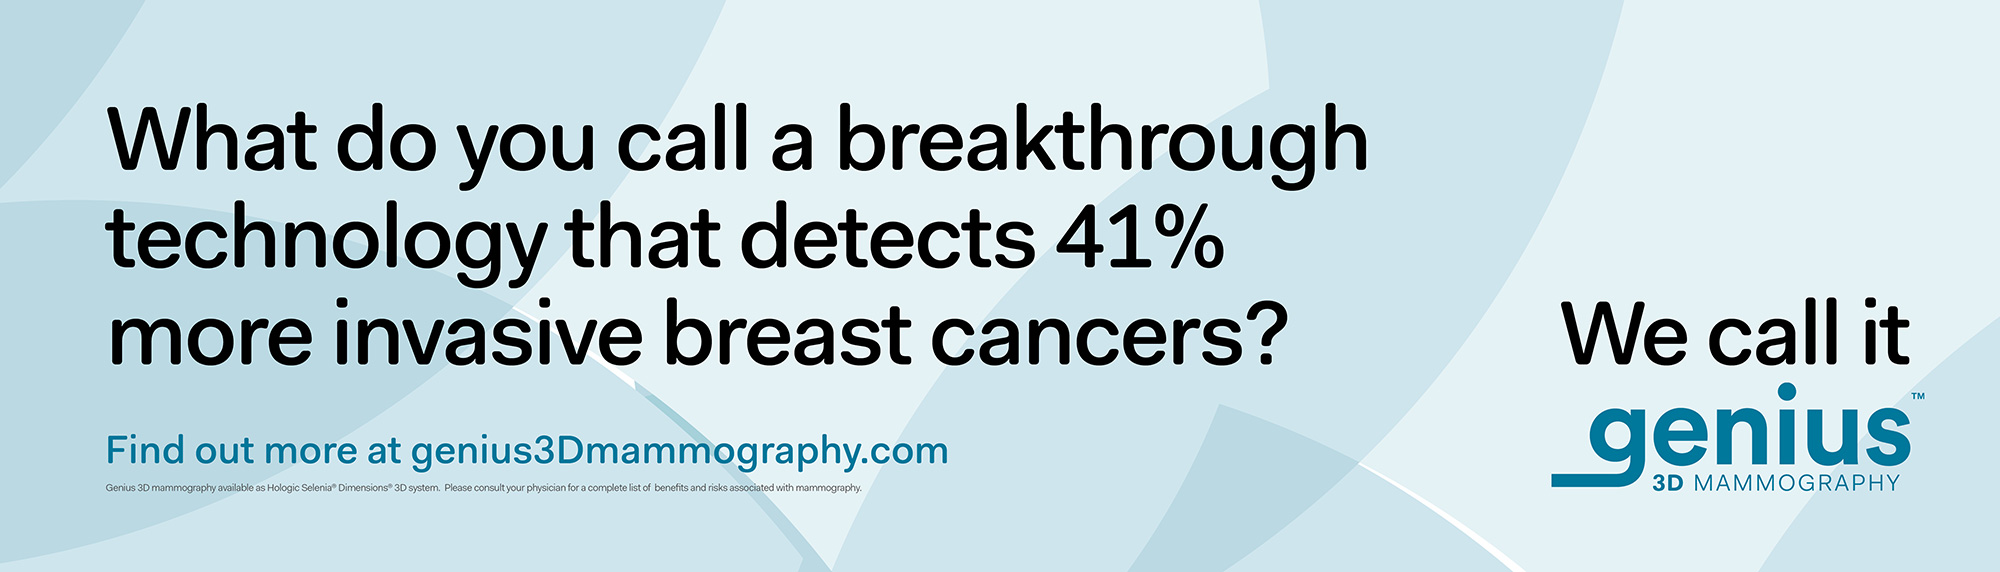 http://www.multivu.com/players/English/7254155-hologic-new-consumer-awareness-campaign-mammography-technology/gallery/image/2aecc848-0653-47c5-a7e1-fef40af553b7.HR.jpg